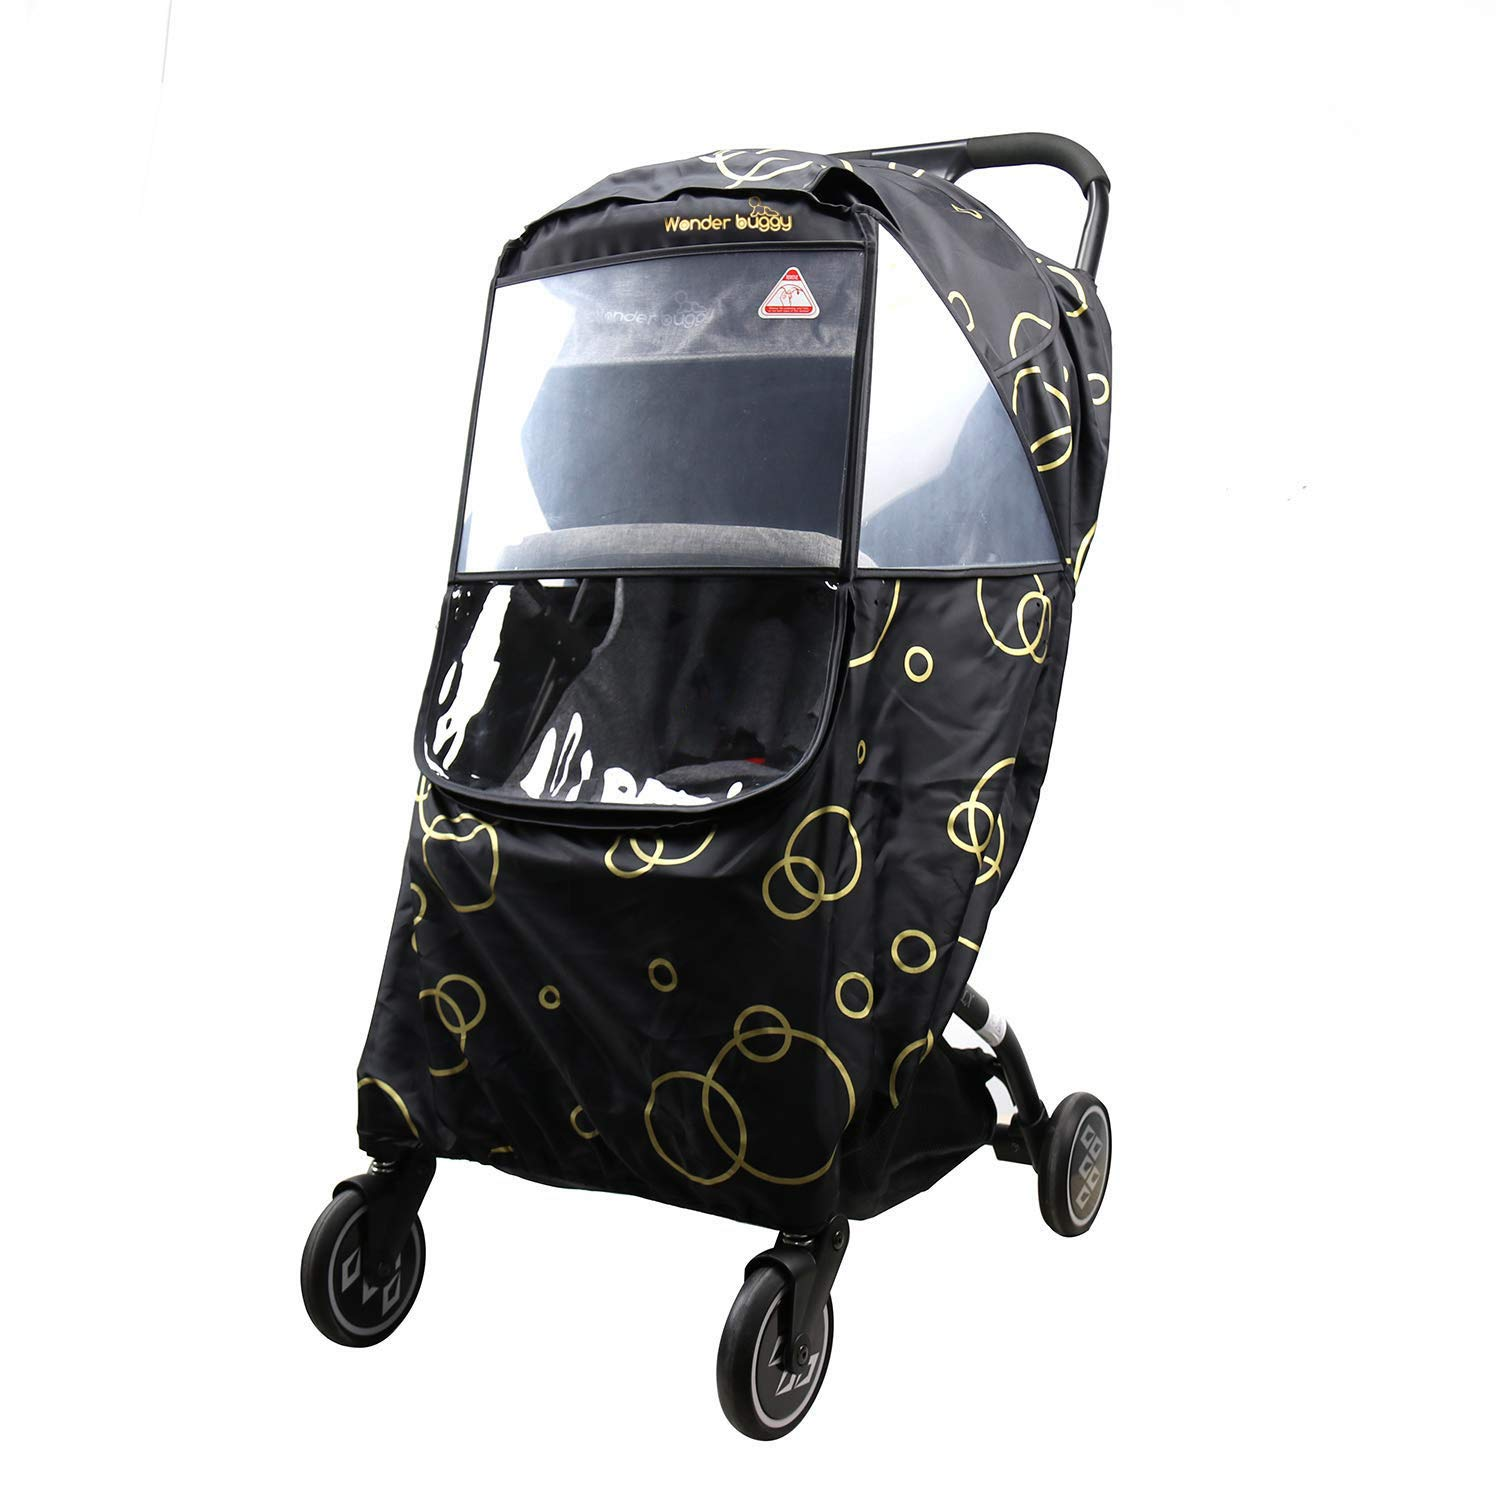 Wonder buggy Universal Stroller Weather Shield Rain Cover with Bubble,Waterproof, Windproof Protection, Travel-Friendly, Outdoor Use, Easy to Install and Remove (Black) by Wonder buggy